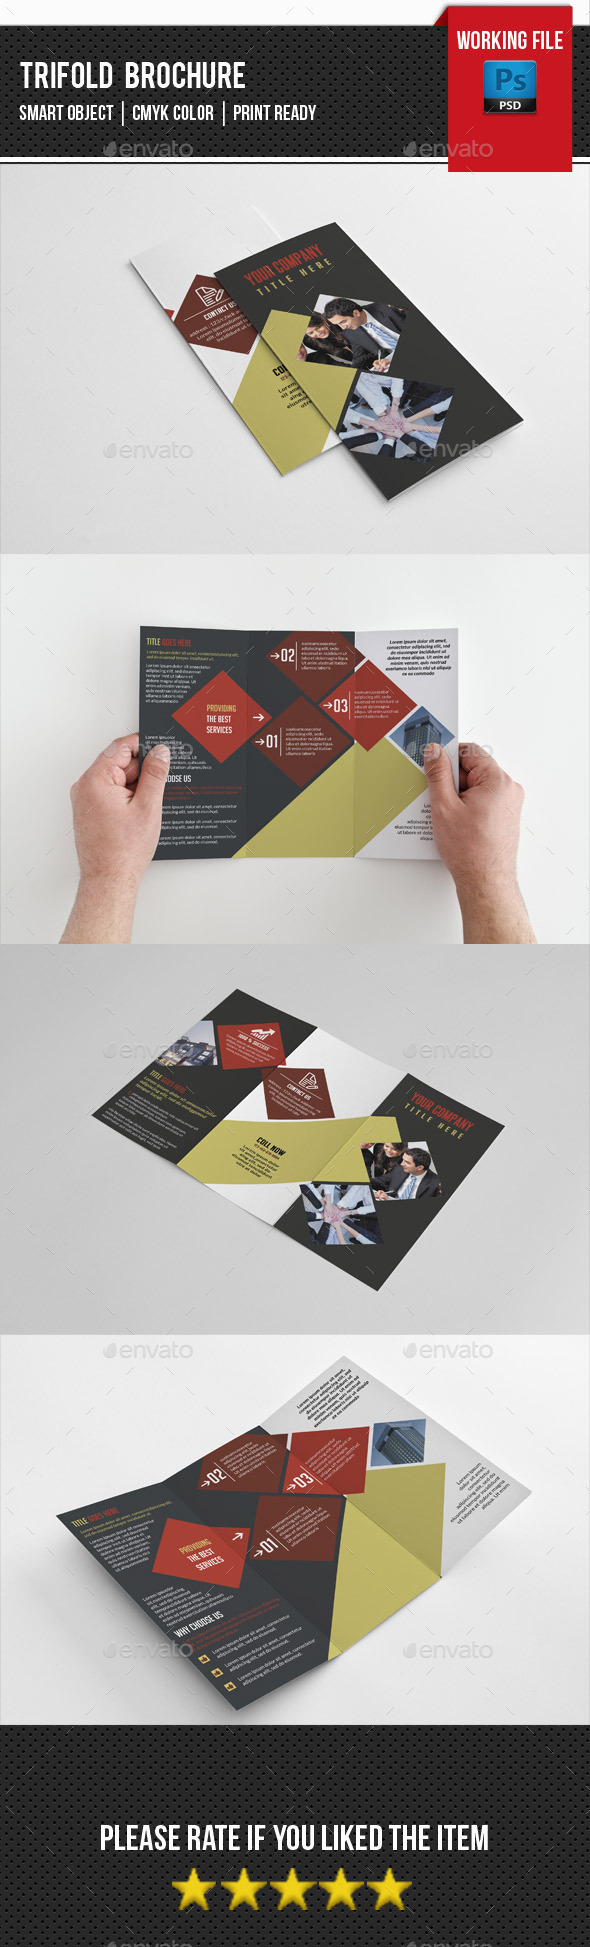 Corporate Trifold Brochure-V235 - Corporate Brochures